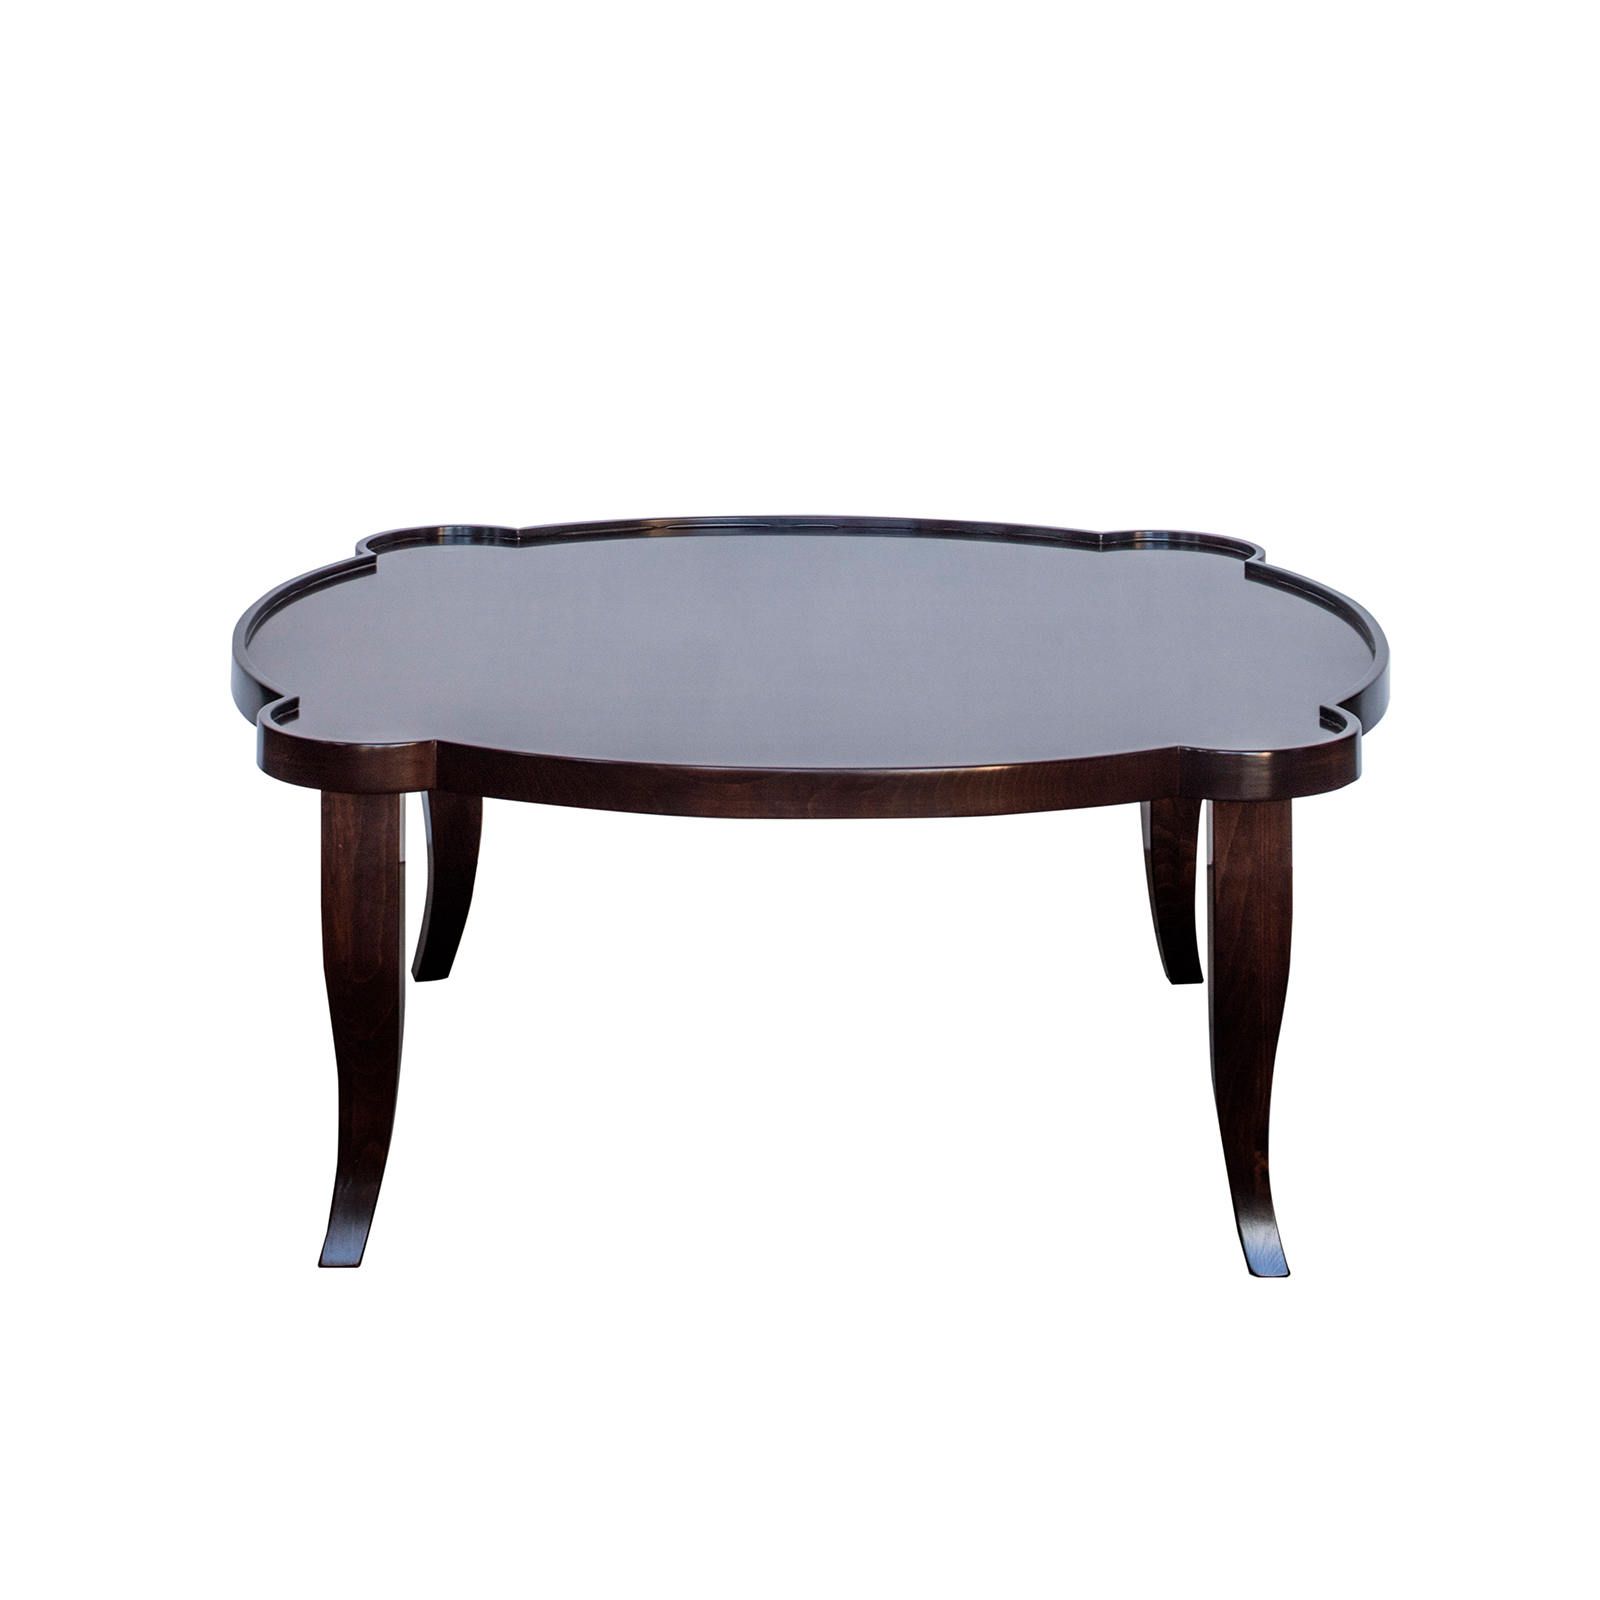 Lugarno-Coffee-Table-Turini-Werich-Bonham-&-Bonham-01